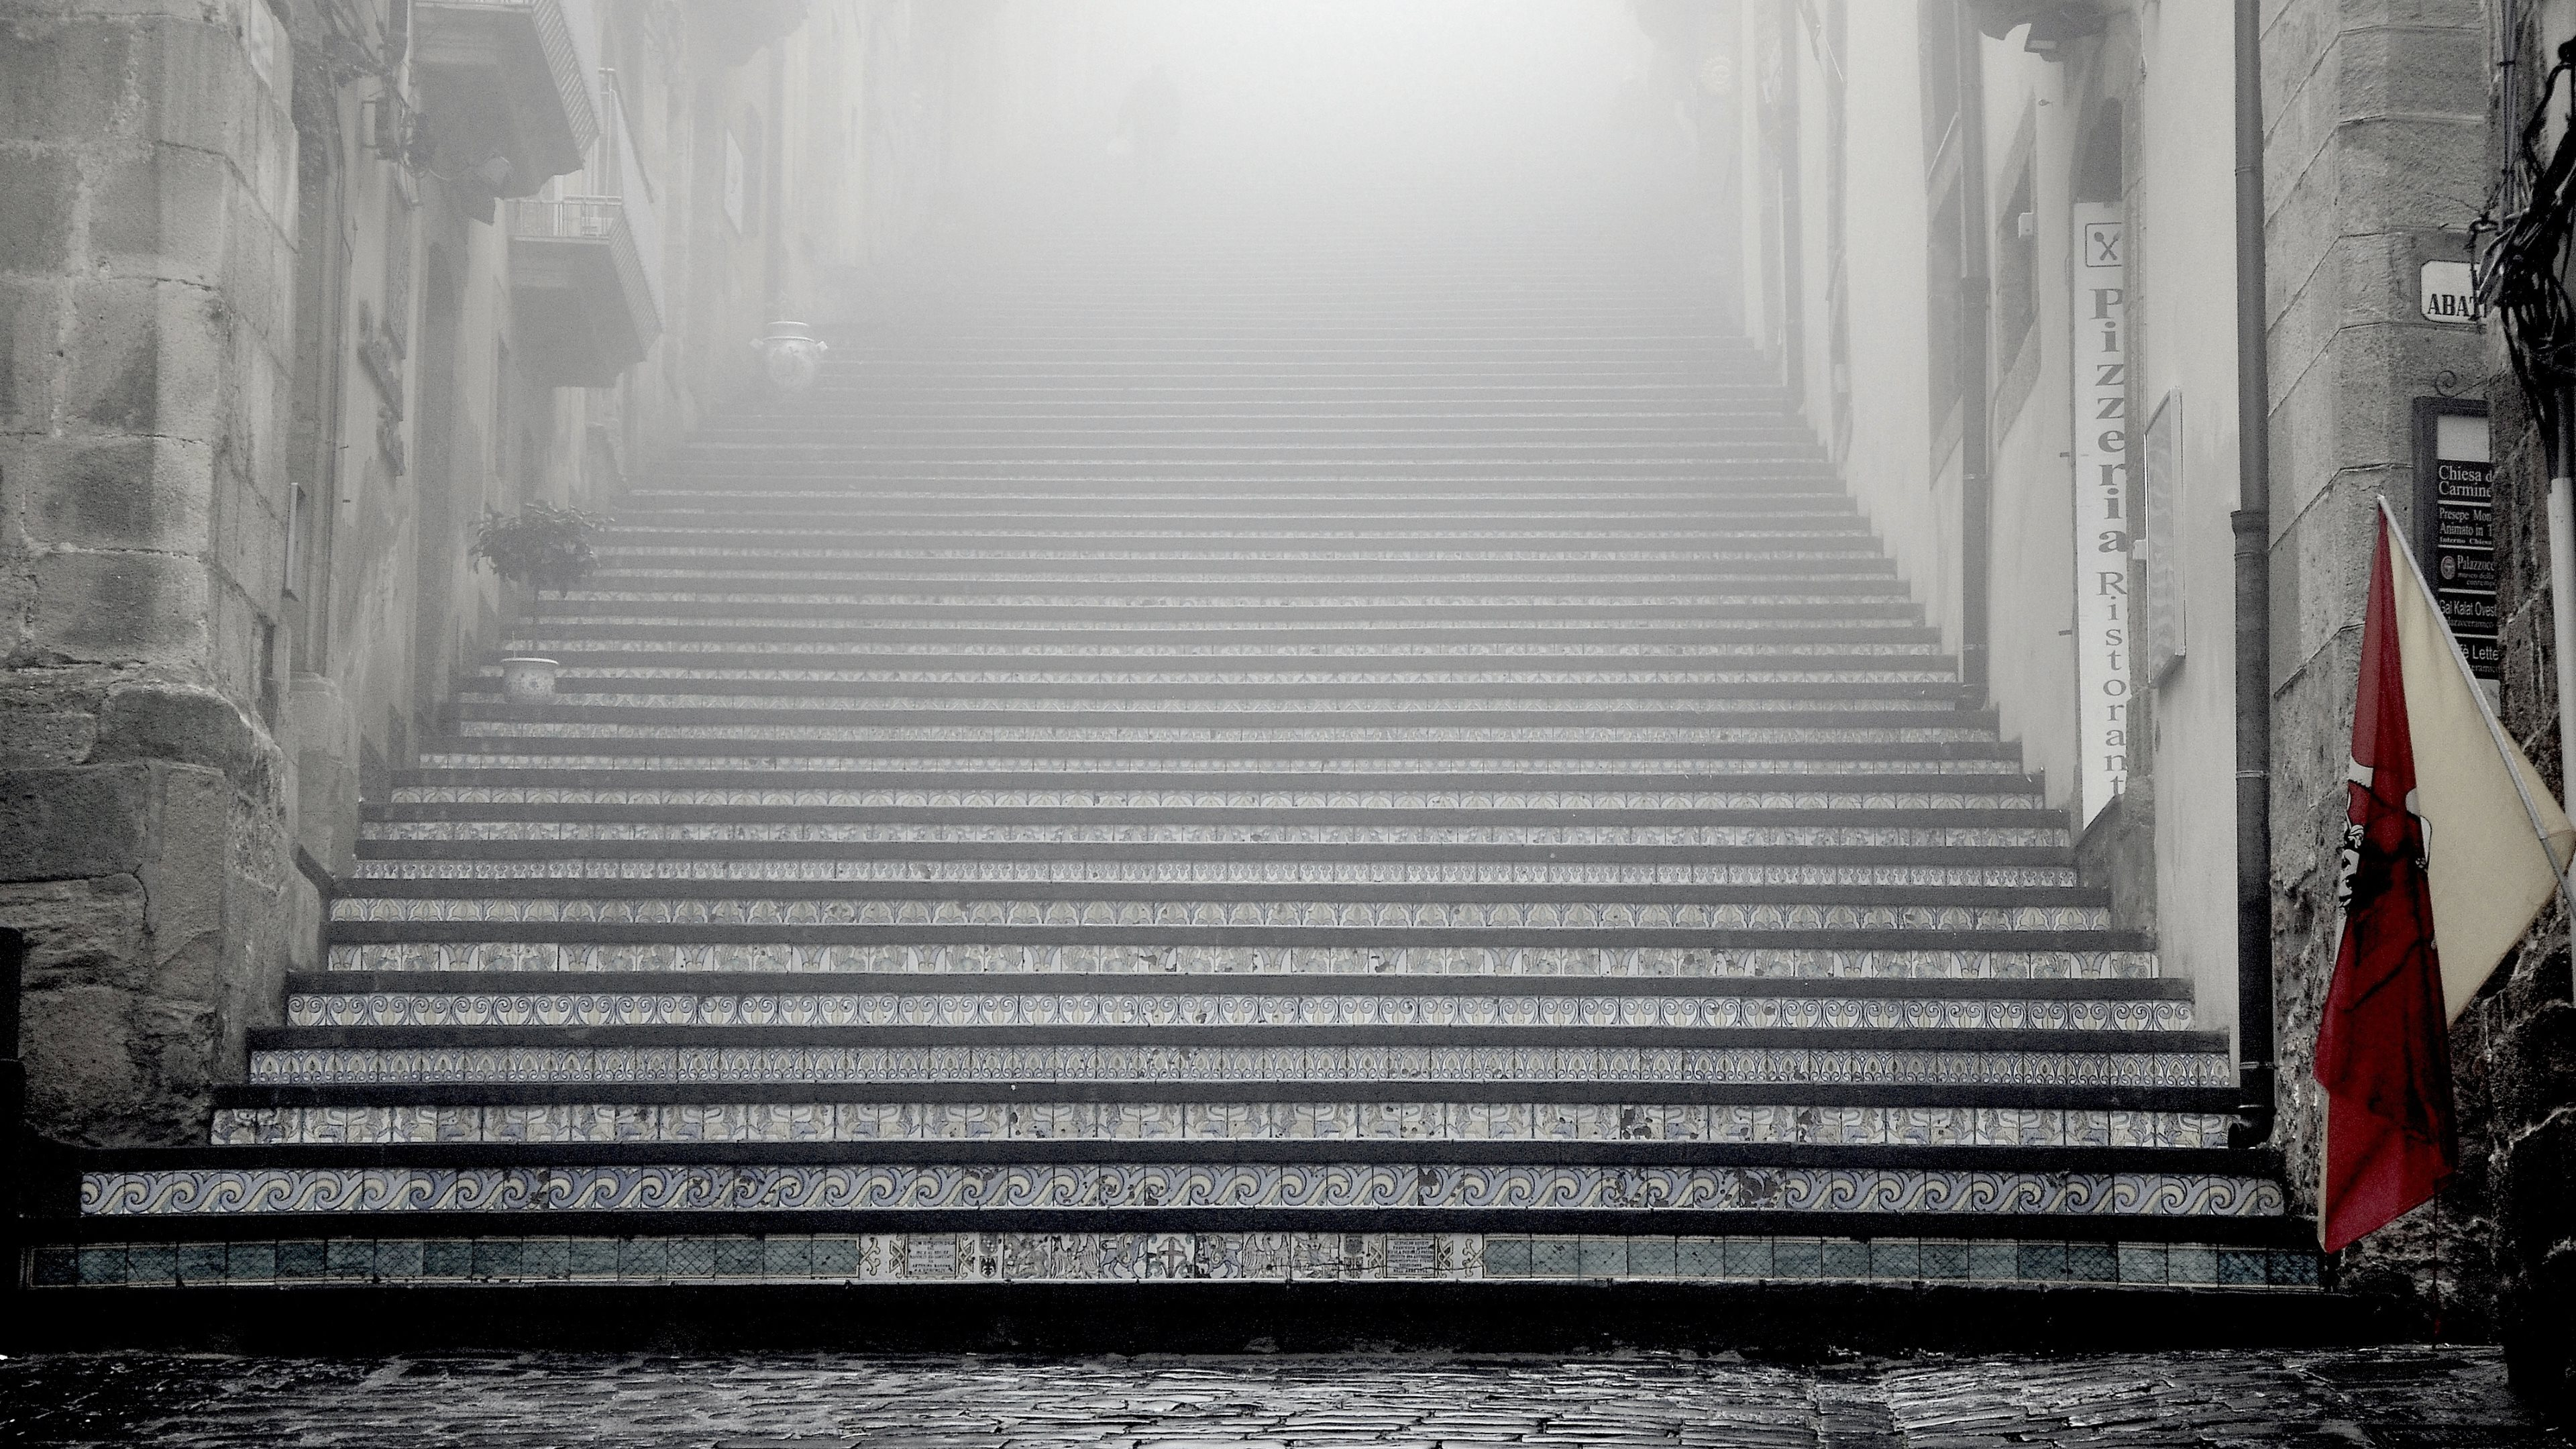 Stair 4K Ultra Hd Wallpaper  Background Image  3840X2160 -4354